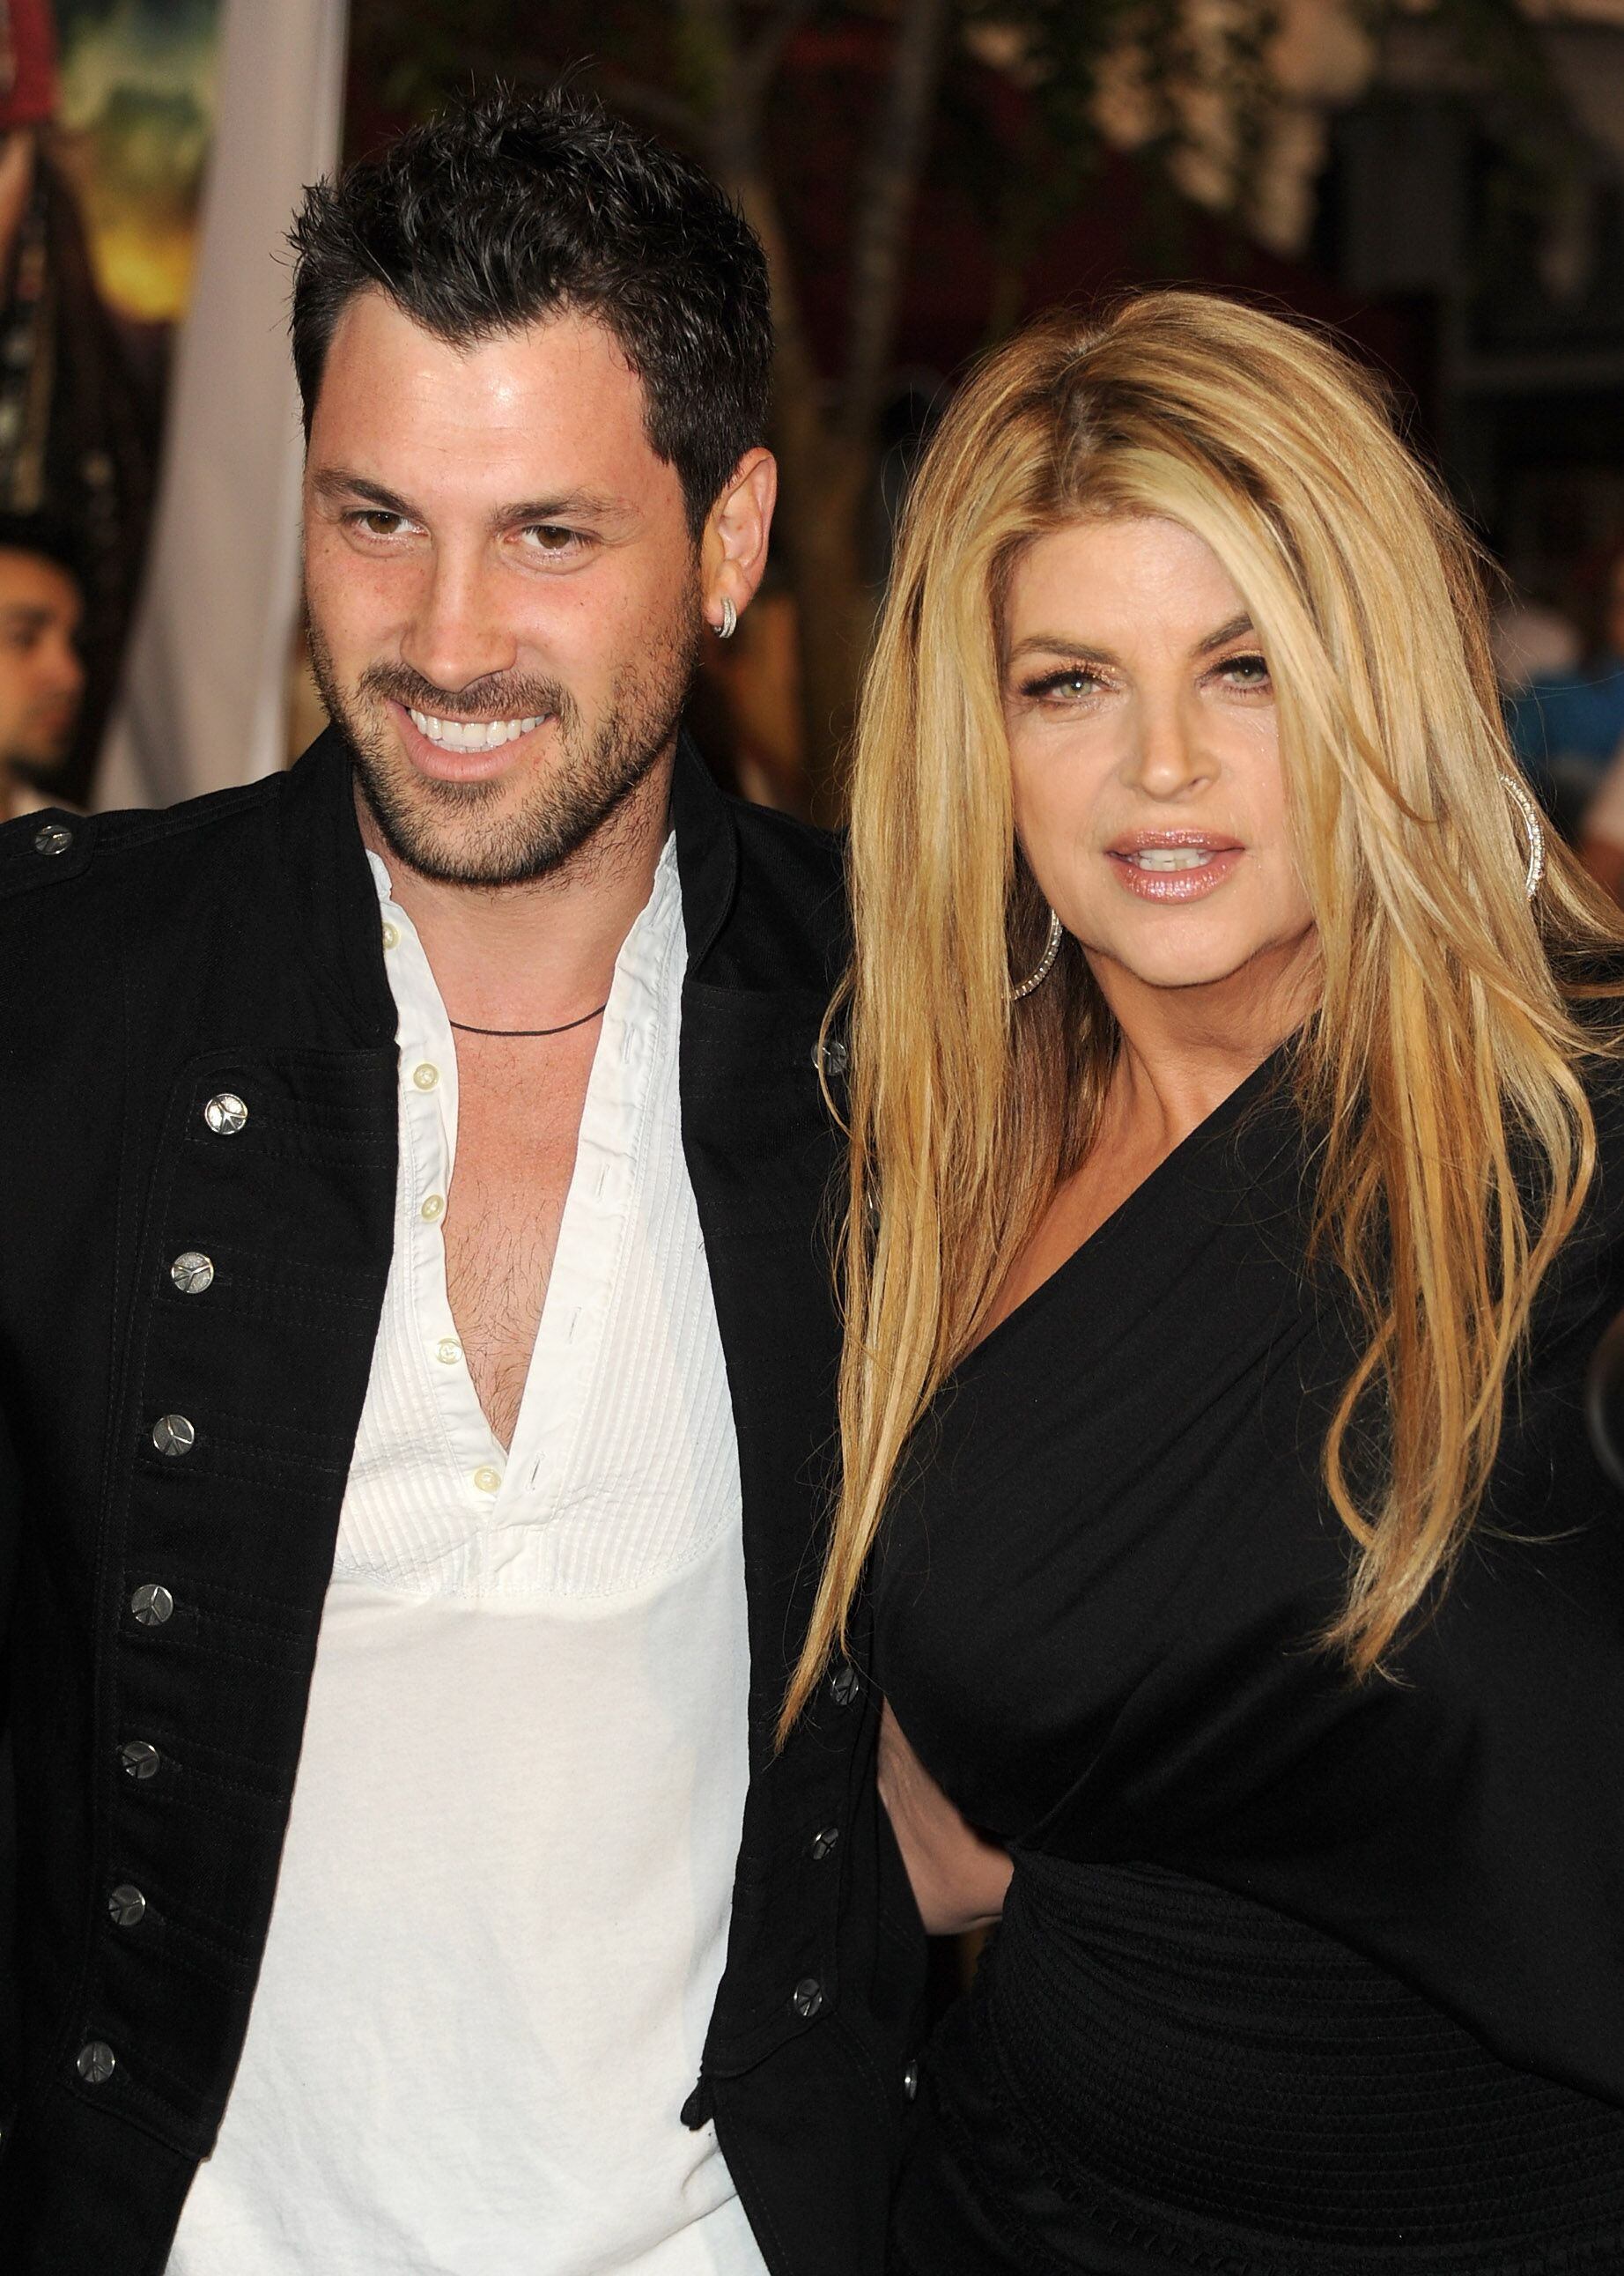 """Maksim Chmerkovskiy and actress Kirstie Alley arrive at premiere of Walt Disney Pictures' """"Pirates of the Caribbean: On Stranger Tides"""" held at Disneyland 